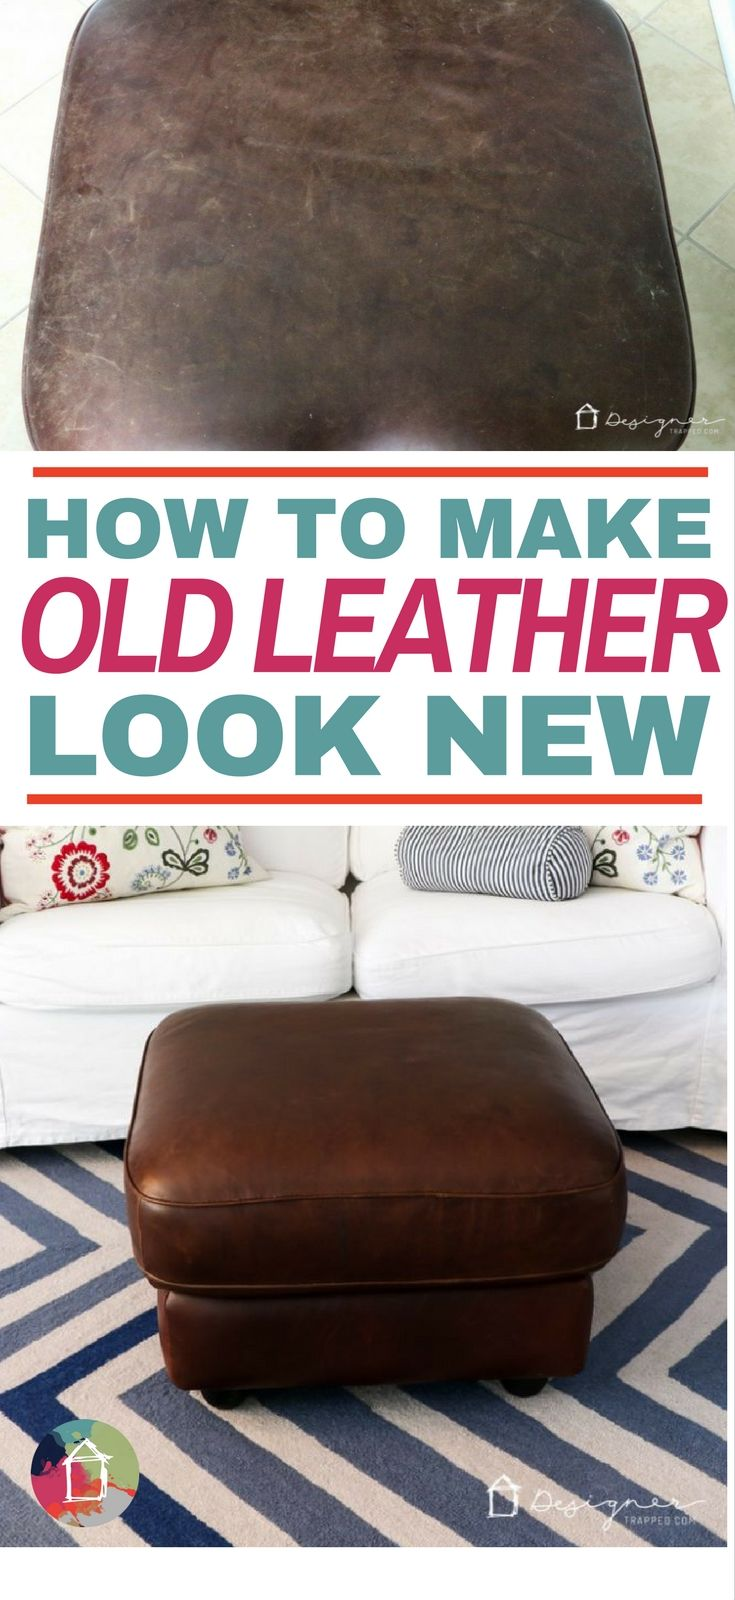 I Had No Idea How To Restore Leather Furniture, But This Makes It Look So  Easy. I Canu0027t Wait To Try It On My Couch!